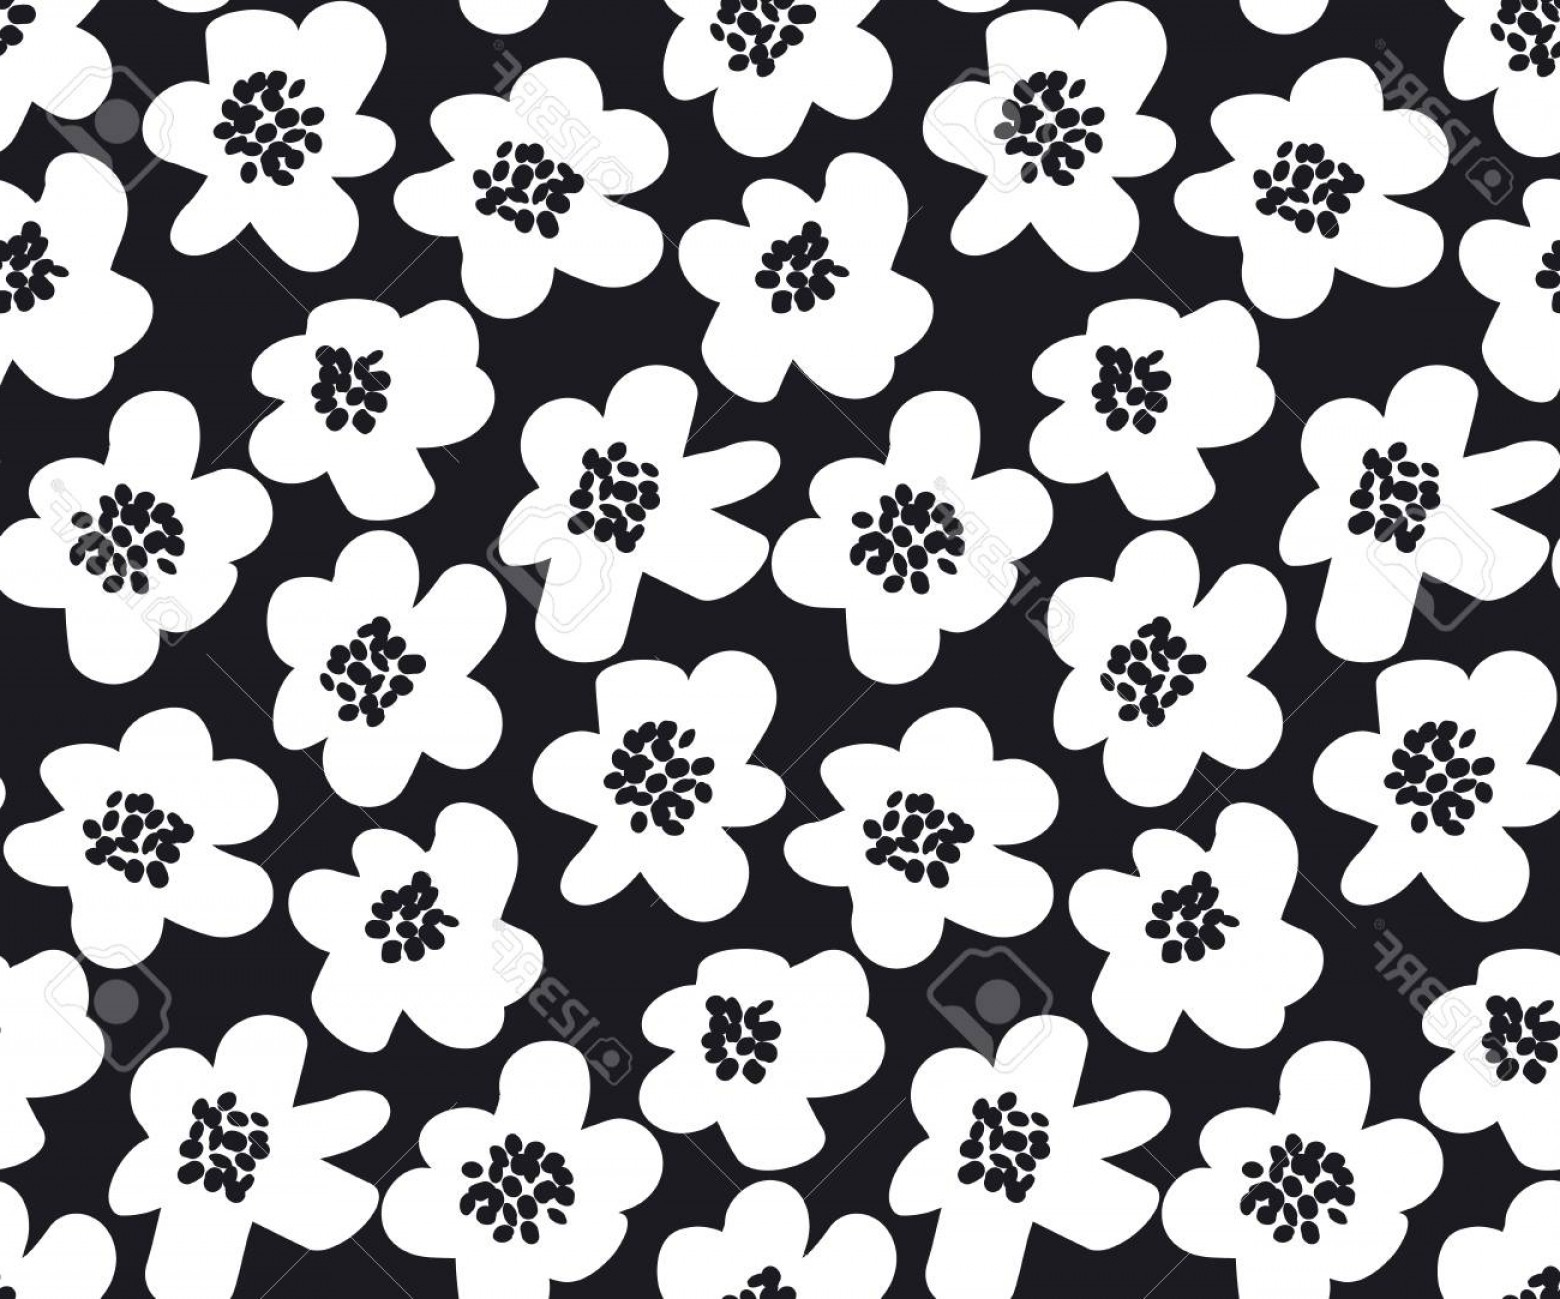 60s Vector: Photostock Vector Black And White Summer Floral Vector Illustration In Retro S Style